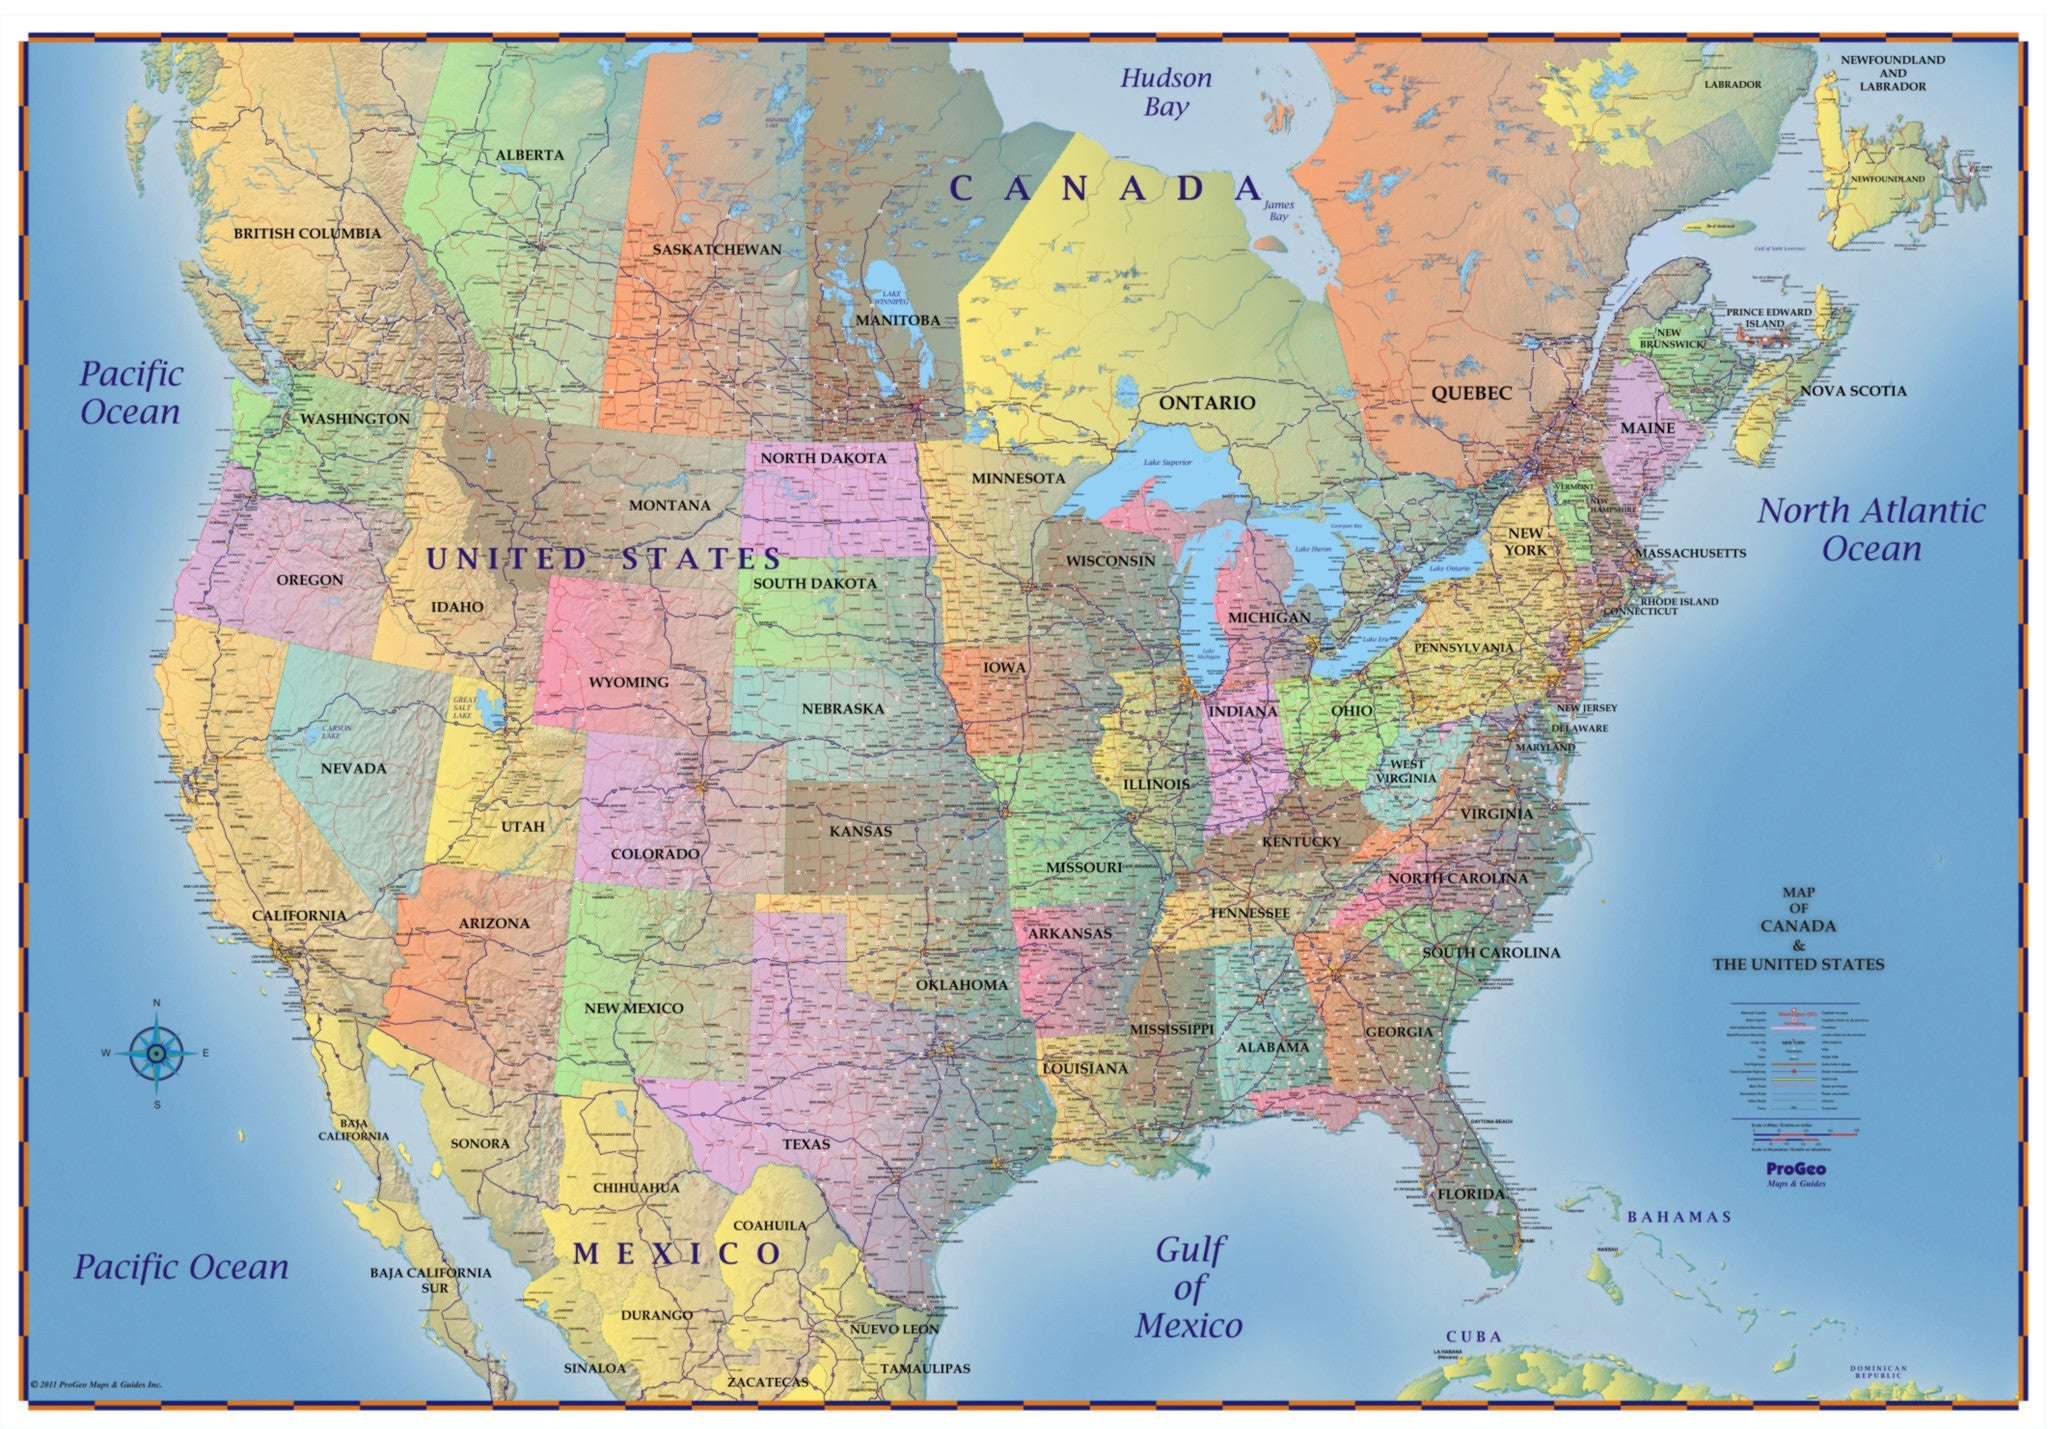 Map Usa States And Canada Trucker's Wall Map of Canada, United States and Northern Mexico